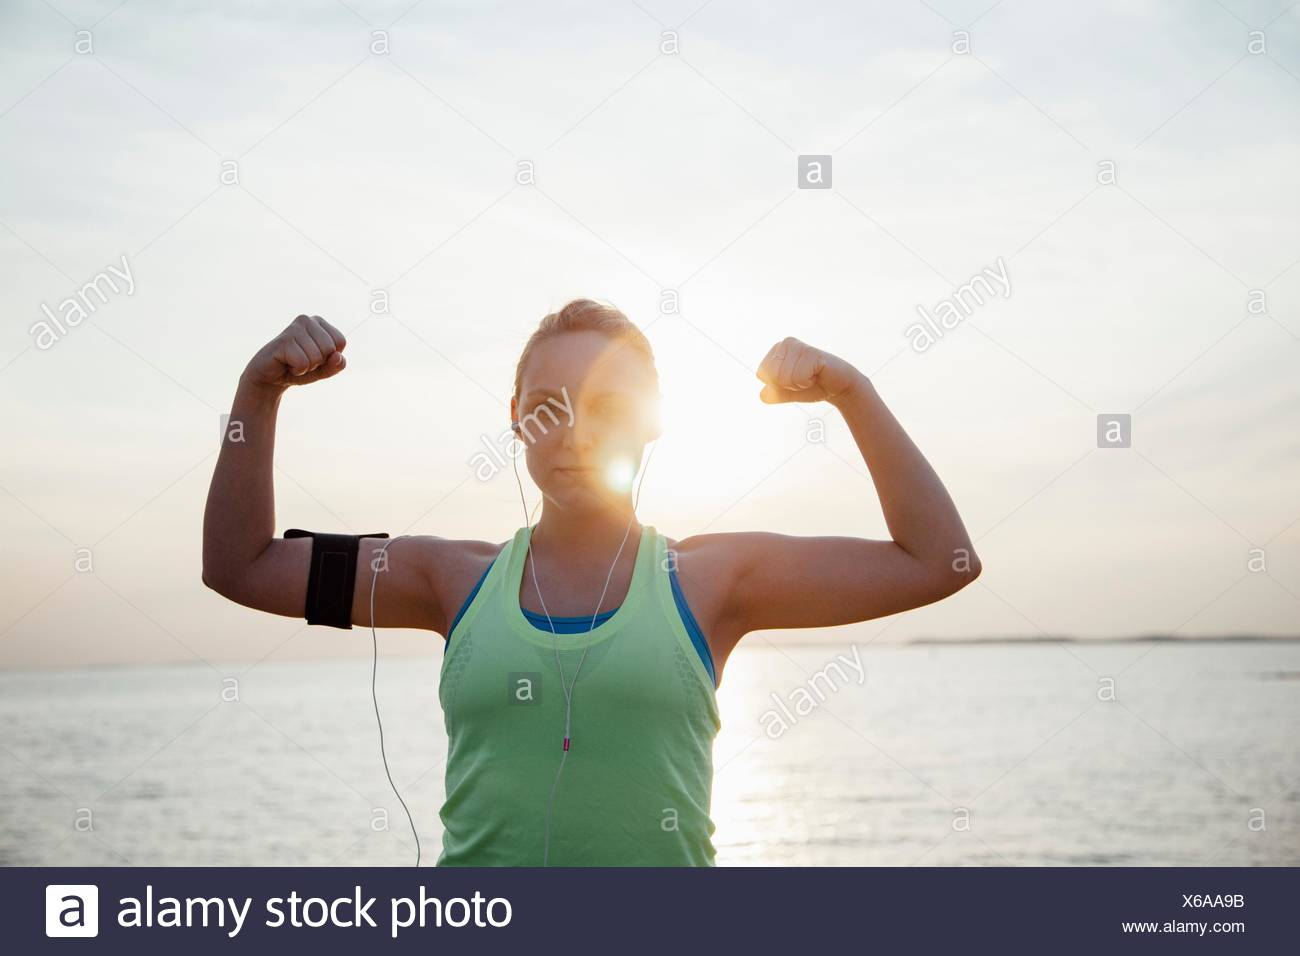 Femme portant les bras levés, activity tracker flexing muscles looking at camera Photo Stock